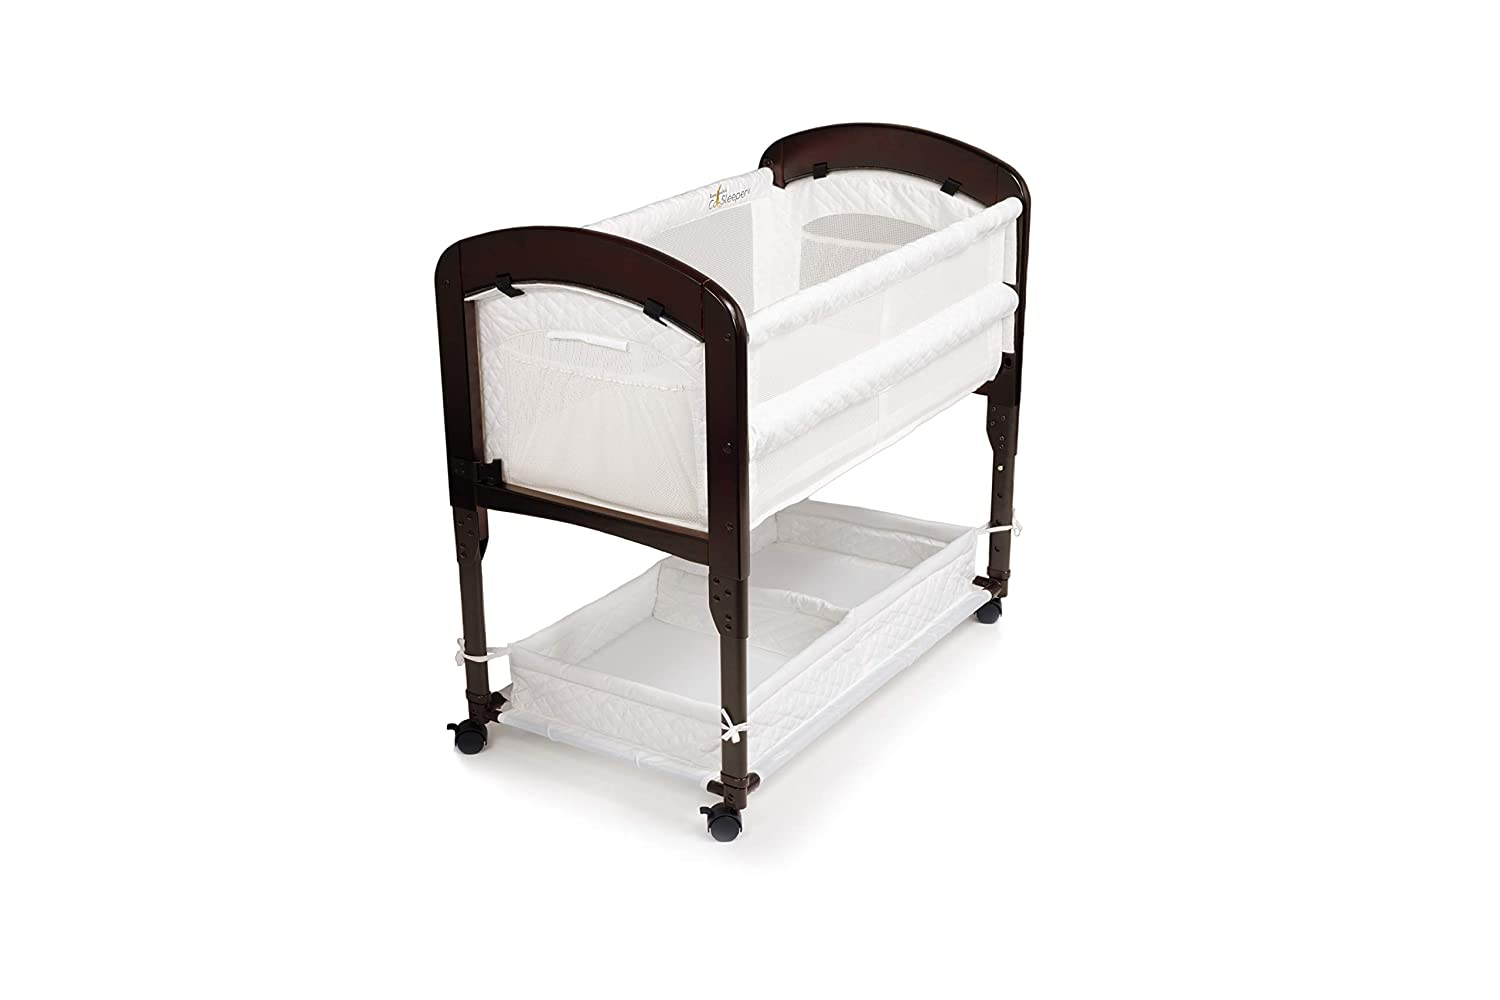 Arm s Reach Concepts Cambria Co-Sleeper, White Espresso